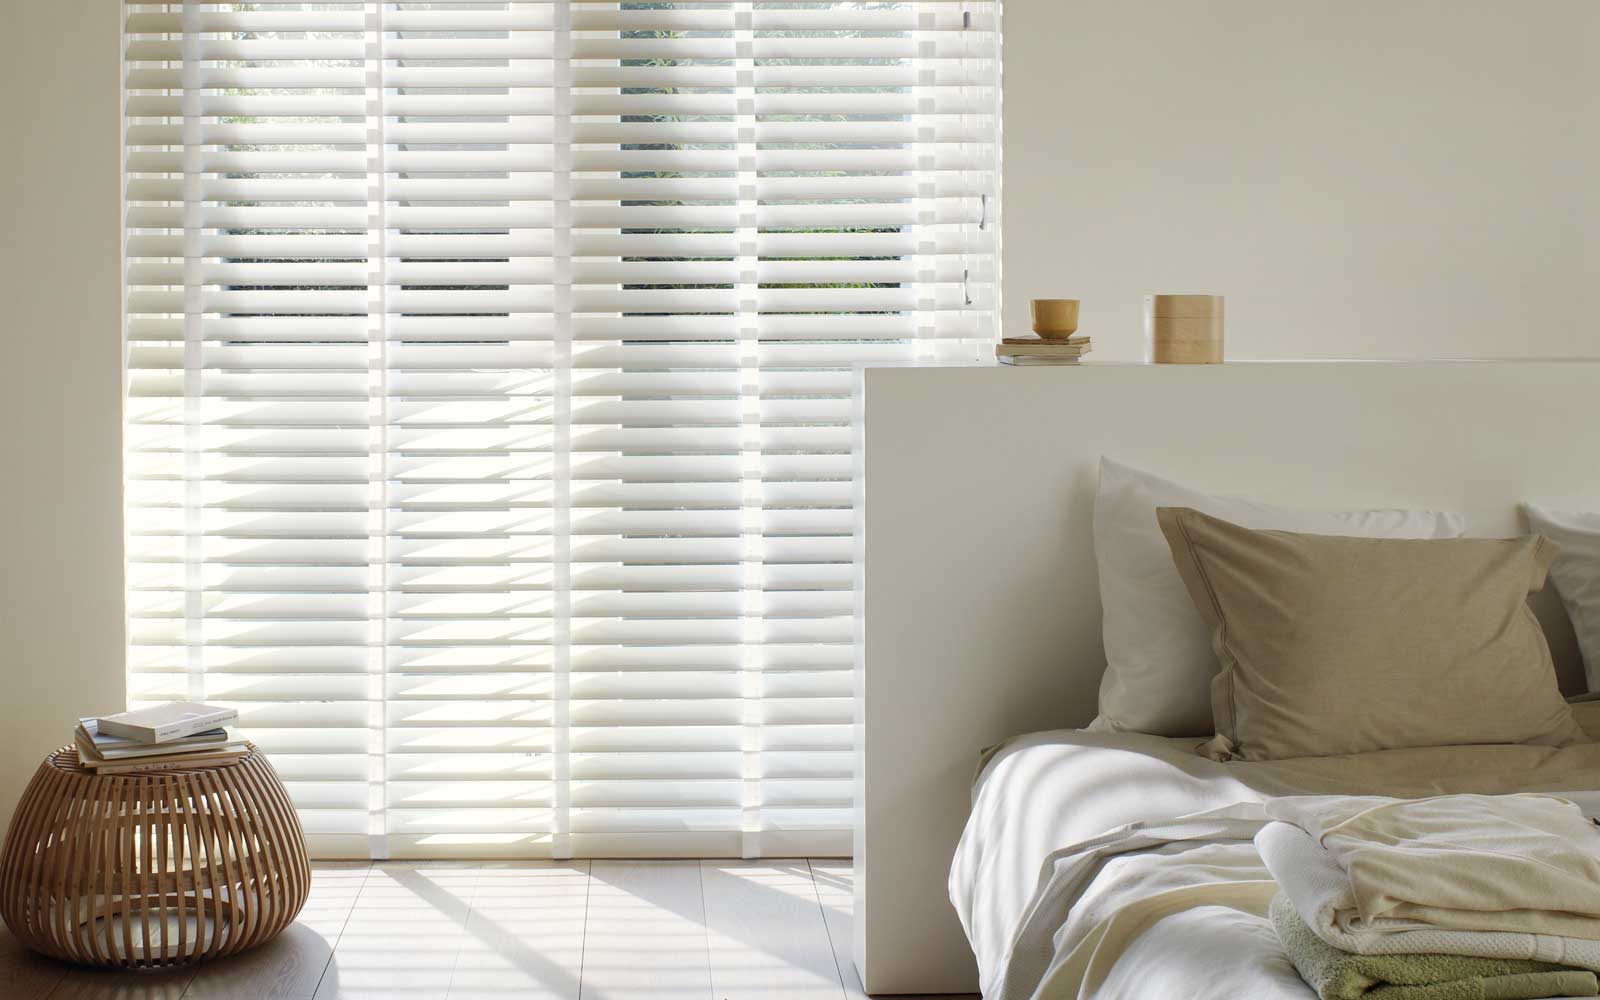 venetian blinds - surrey blinds & shutters